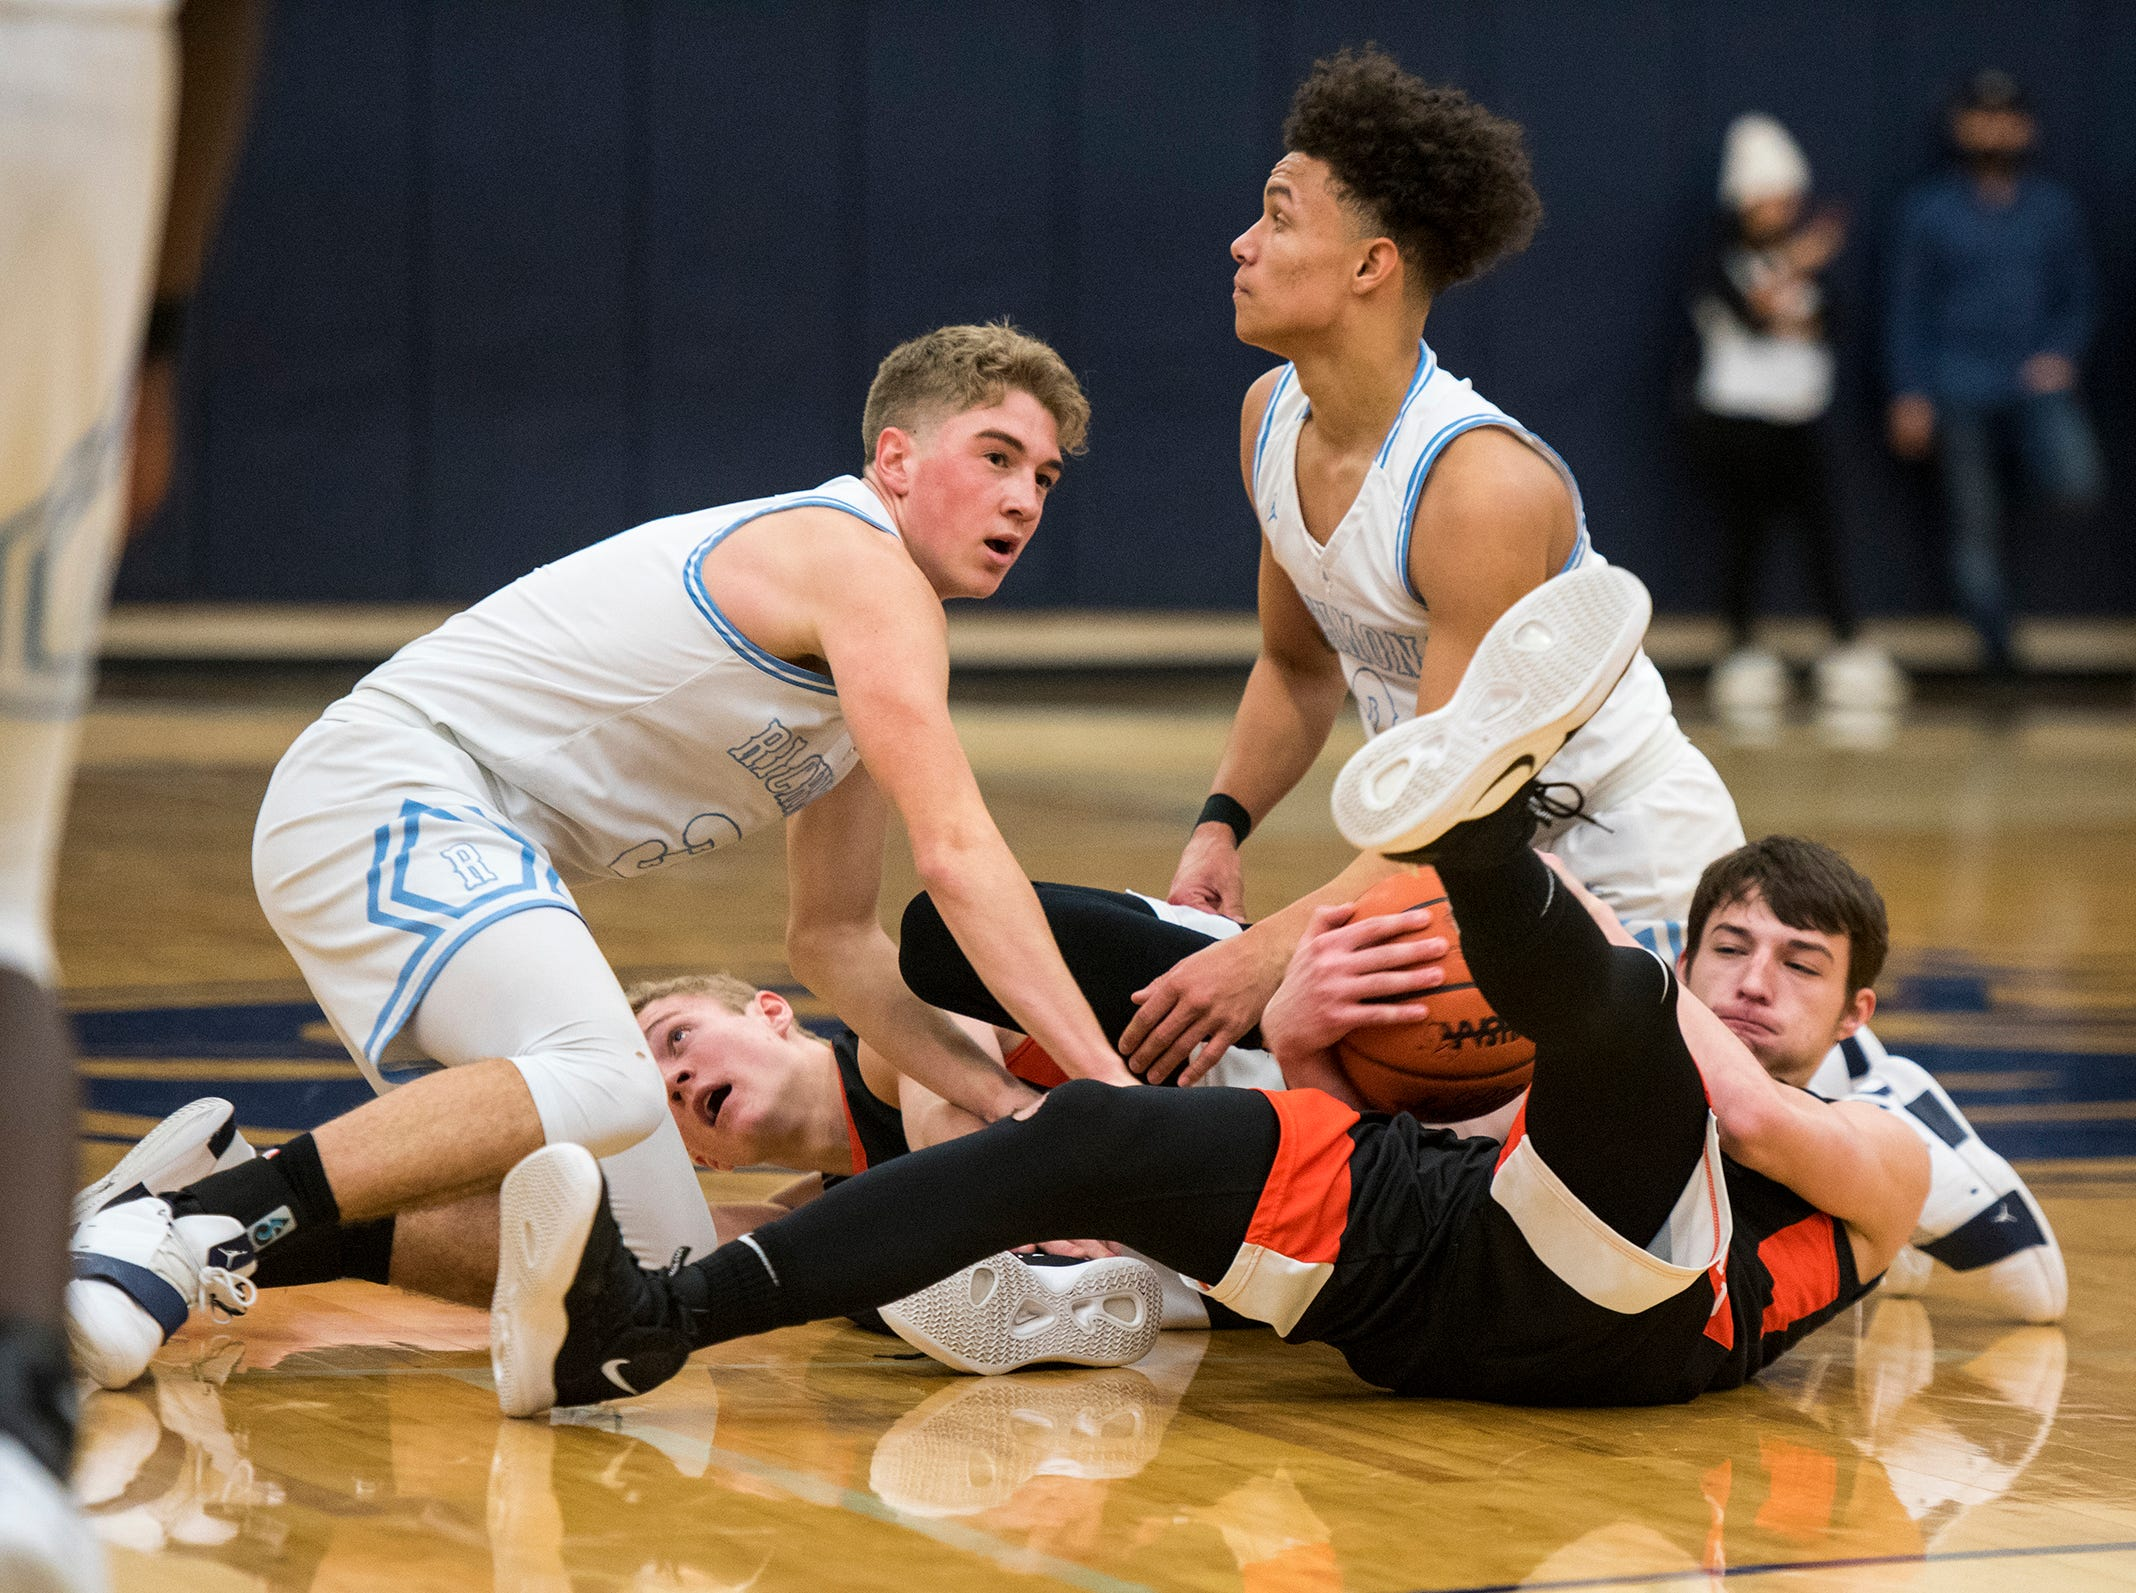 Players fight for the ball during a basketball game between Richmond and Almont High School Friday, Feb. 15, 2019 at Richmond High School.